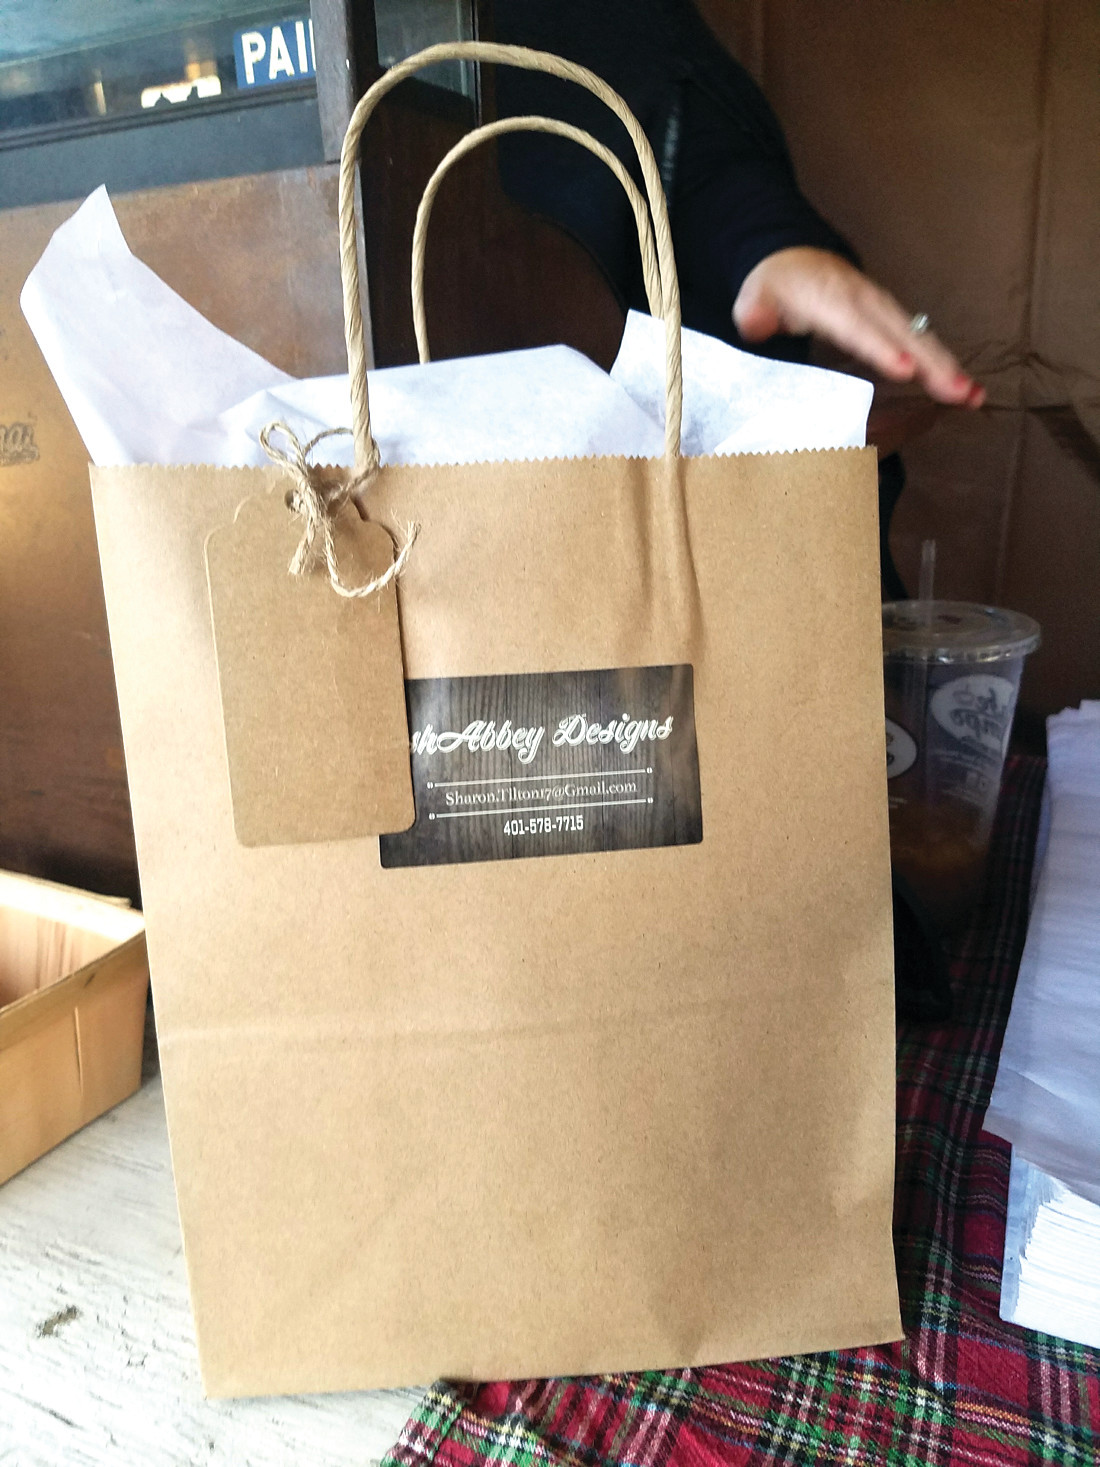 THAT SPECIAL TOUCH: Each item went home with Abbey's Shabbey Designs signature wrapping and gift bags and a thank-you tag.